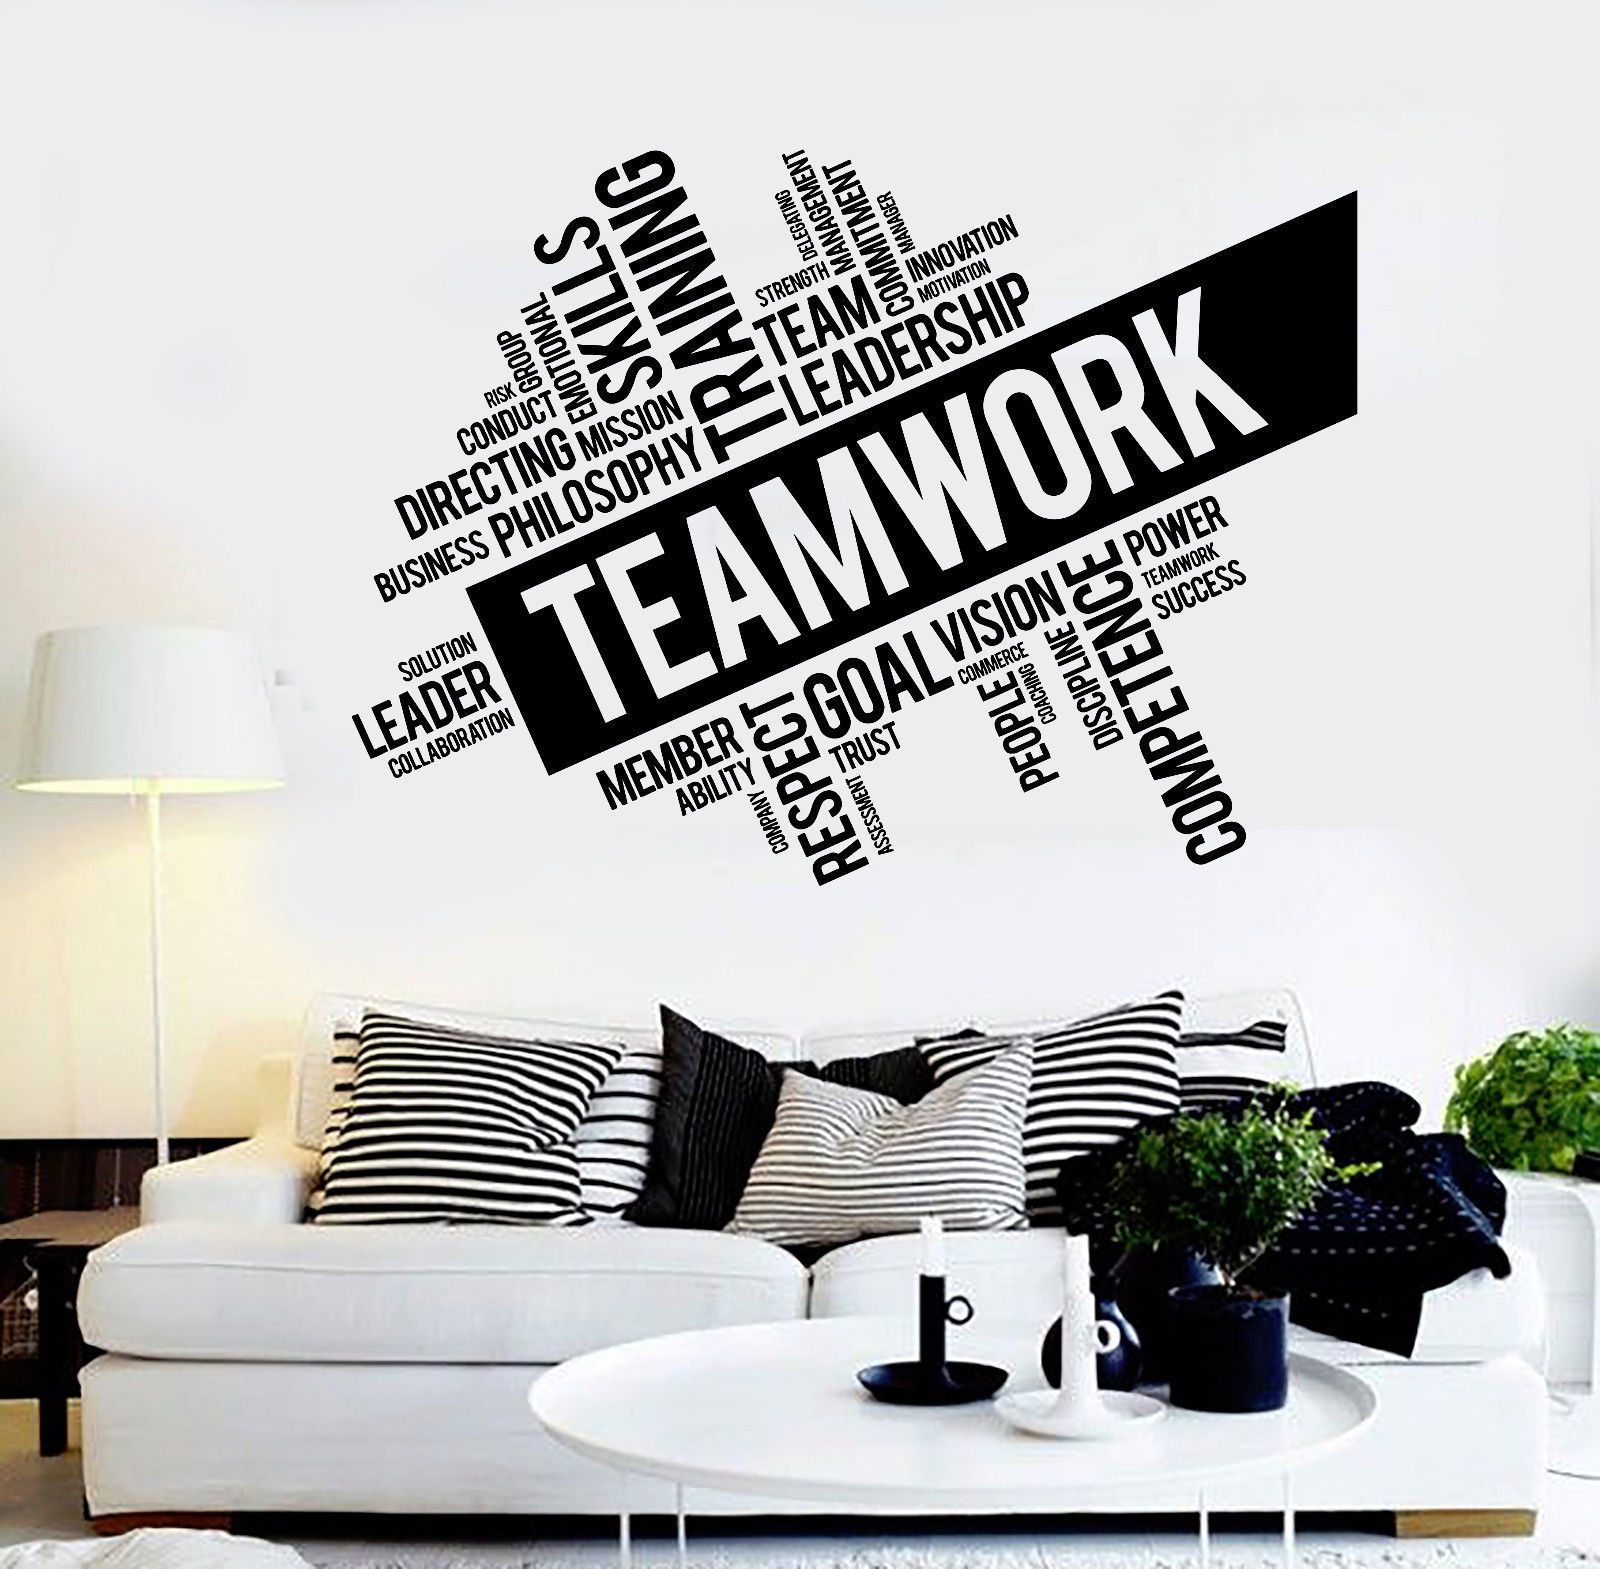 Teamwork Letters Wall Sticker Removable Decal Vinyl Novelty Office Decor White Office Wall Decor Office Walls Office Decor